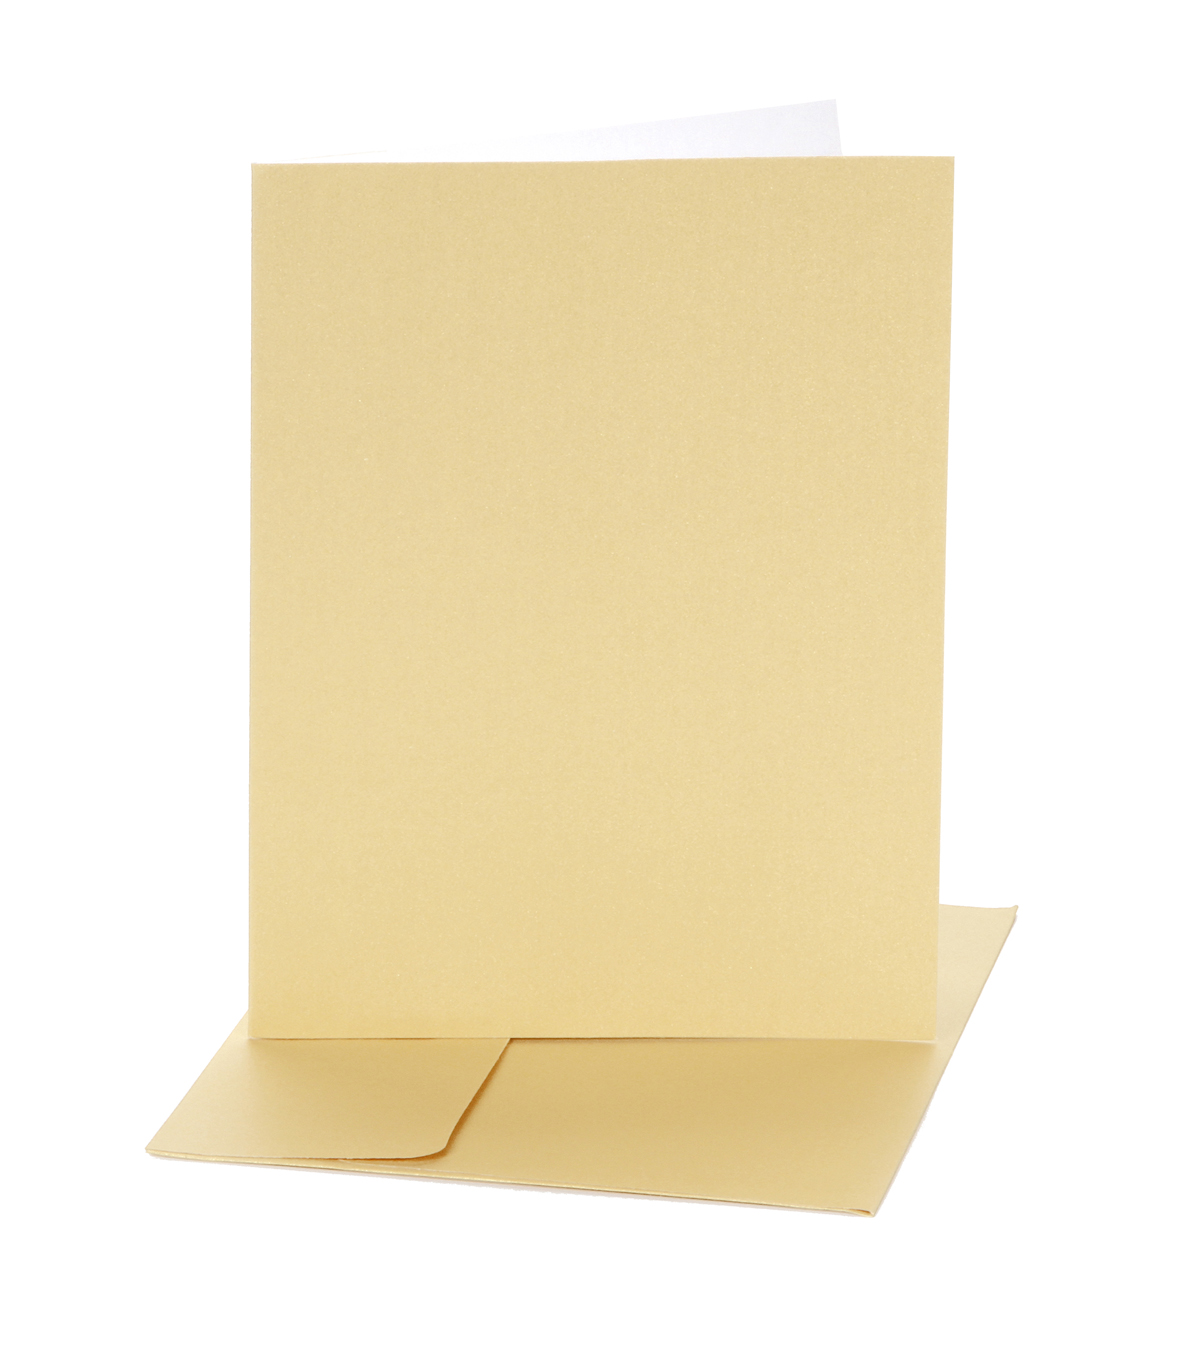 Core\u0027dinations Card/Envelopes:  A7 Champagne Pearl; 25 pack